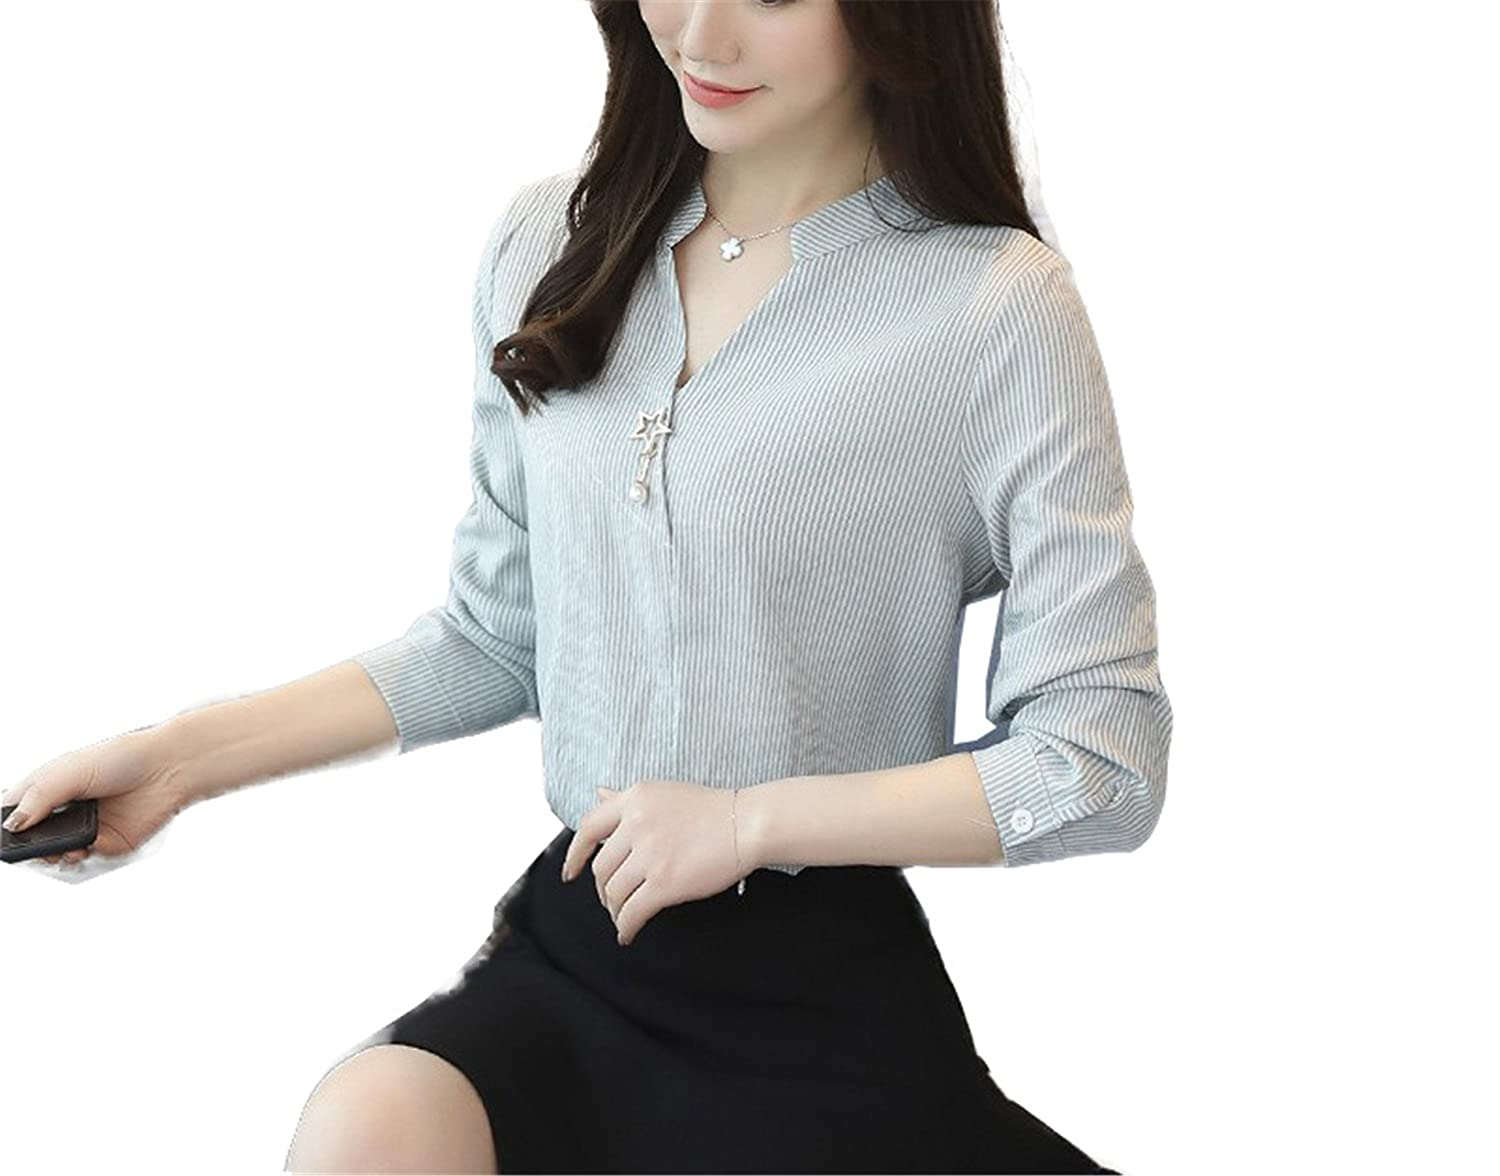 OUXIANGJU New Women Chiffon Blouse Spring Office Shirts V-Neck Long Sleeve Ladies Striped Tops at Amazon Womens Clothing store: